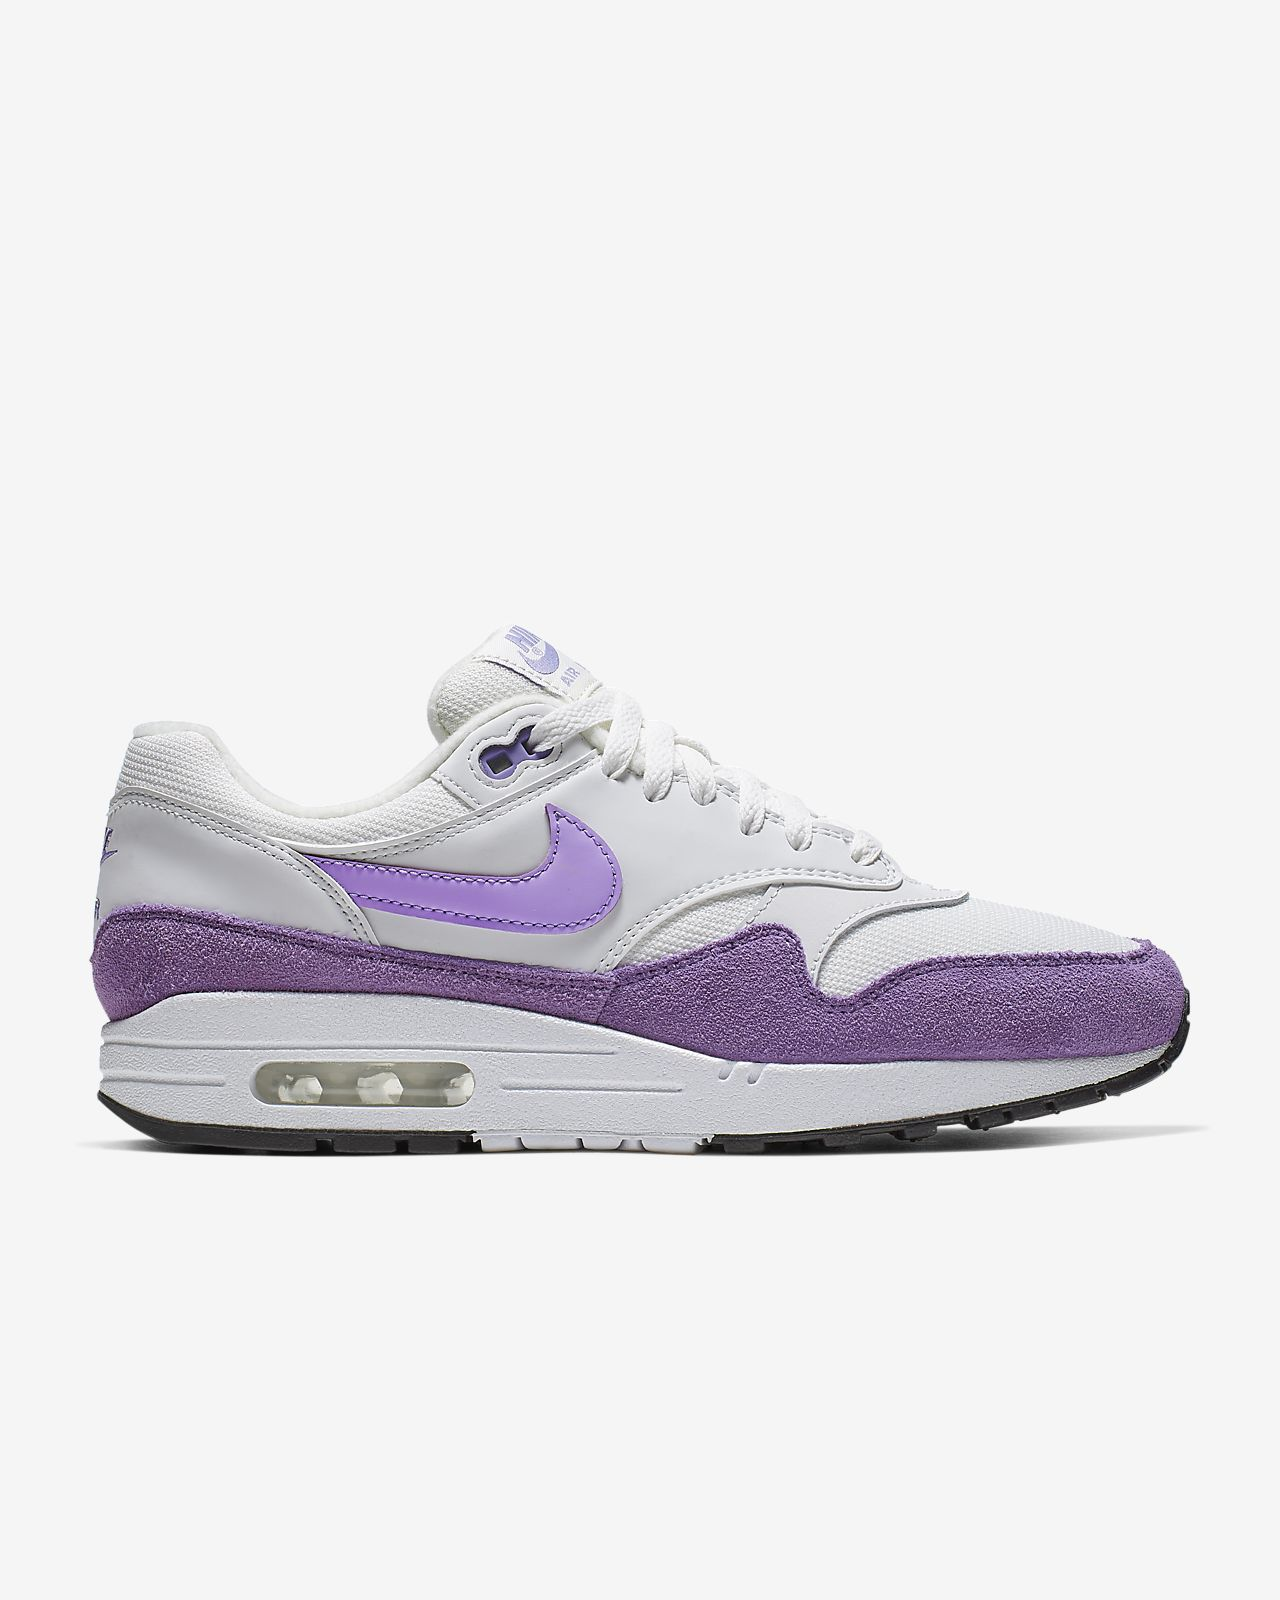 new product 06516 89bf4 ... Nike Air Max 1 Women s Shoe